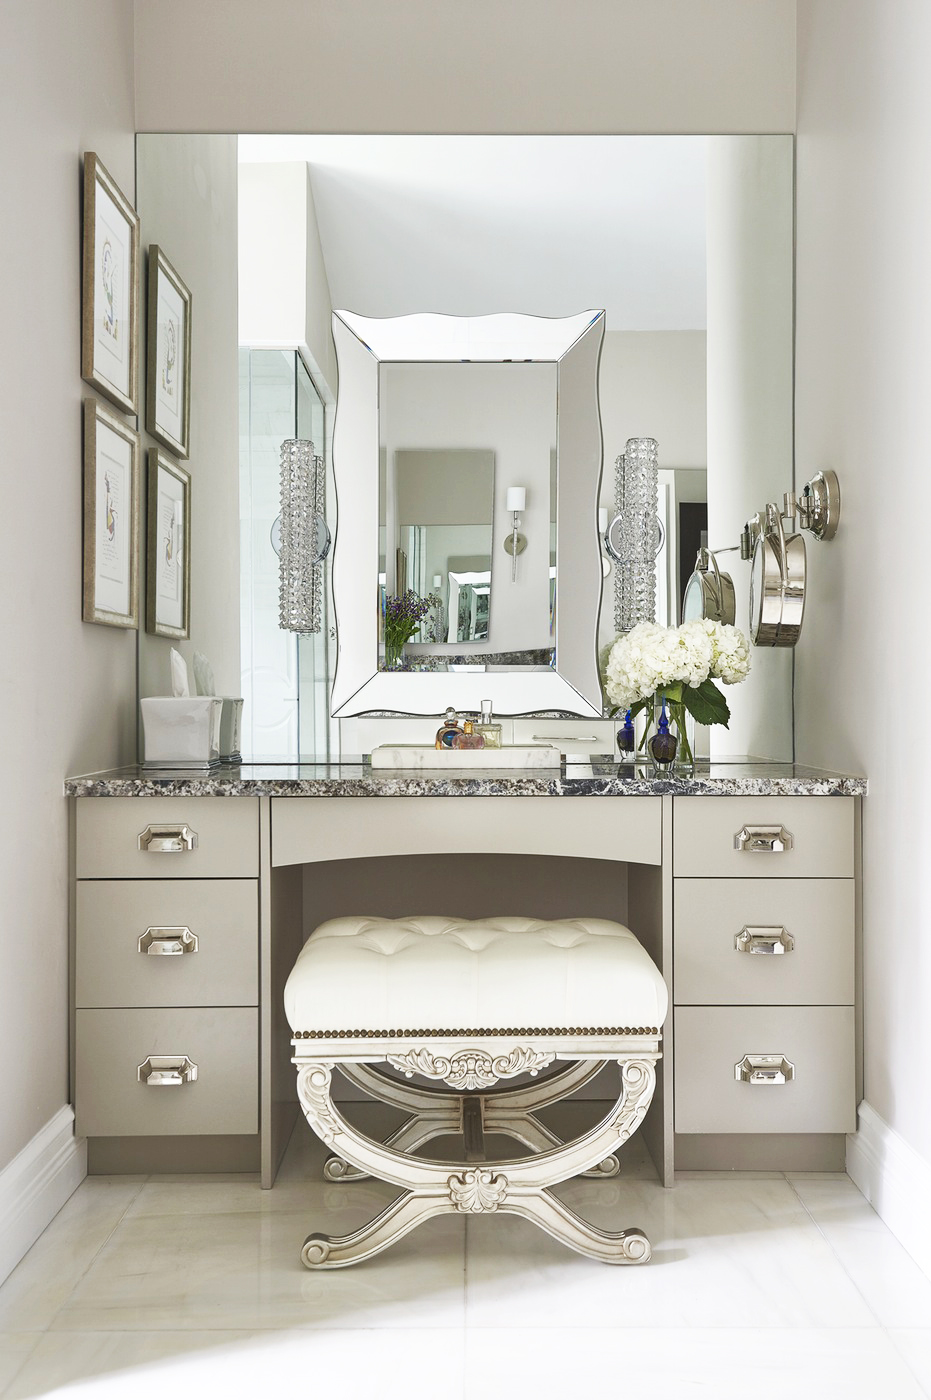 Impeccable Style - Get The Designer Look In Your Home With ... on Makeup Room Ideas  id=21985